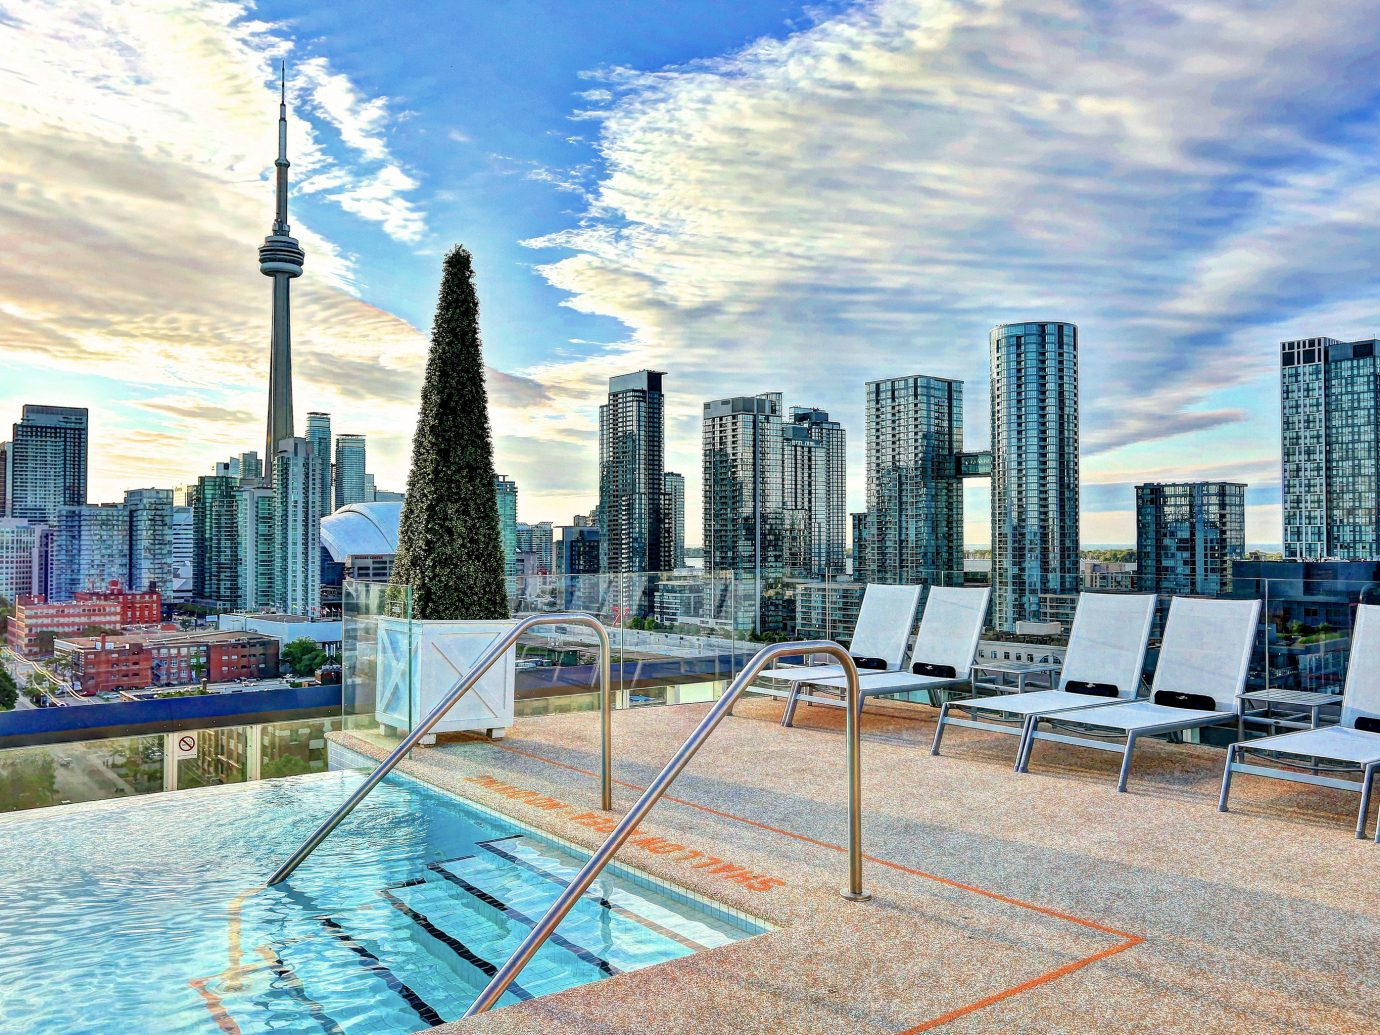 Canada Hotels Toronto sky outdoor condominium leisure property City skyline human settlement plaza skyscraper Downtown residential area cityscape tower block real estate estate overlooking day